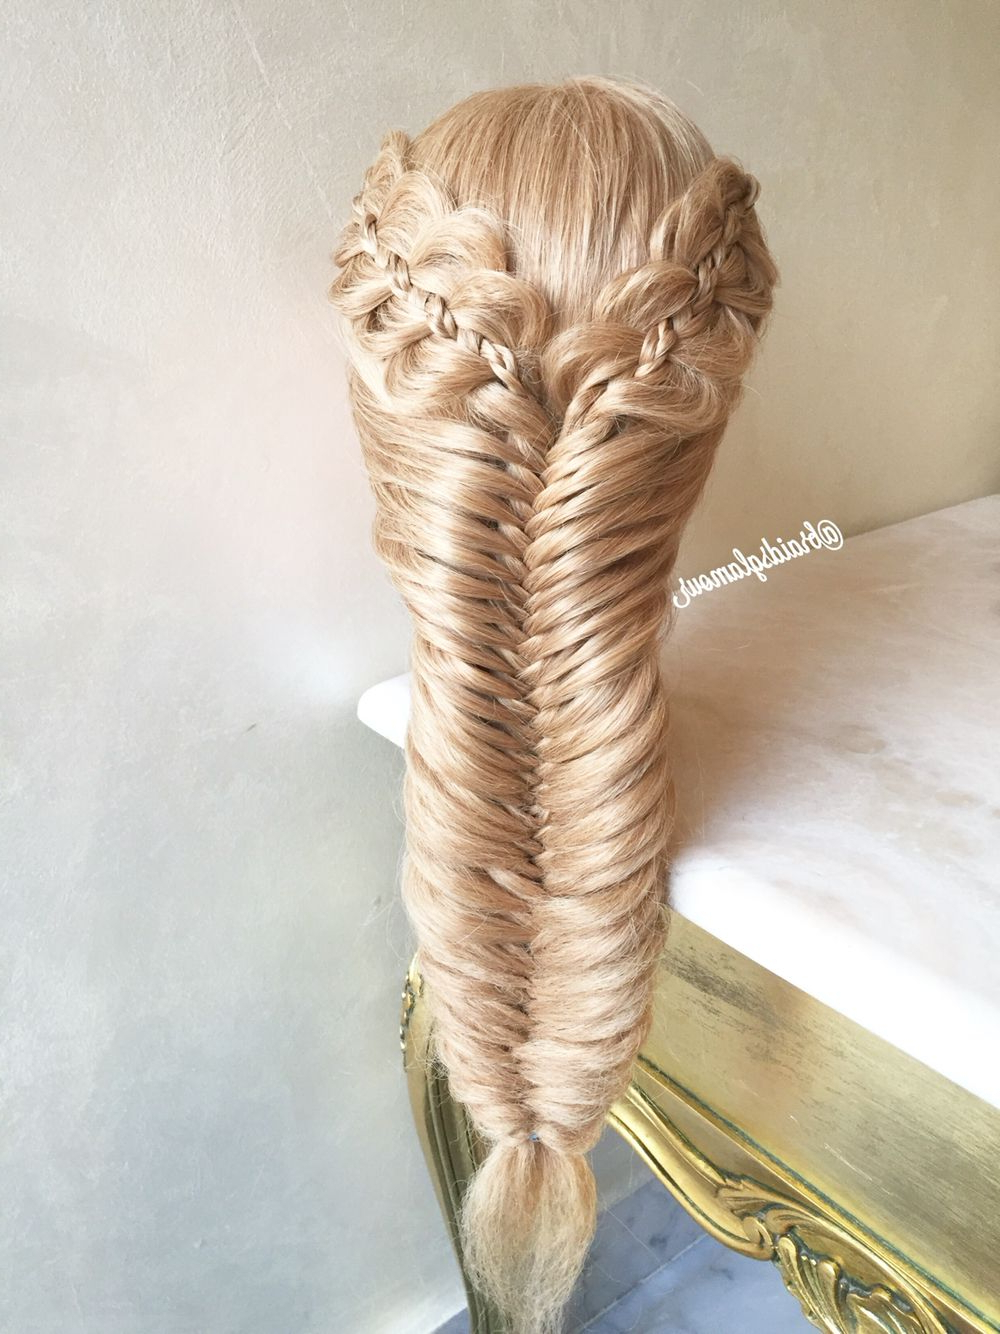 Pin On My Braids With Favorite Rope And Fishtail Braid Hairstyles (View 11 of 20)